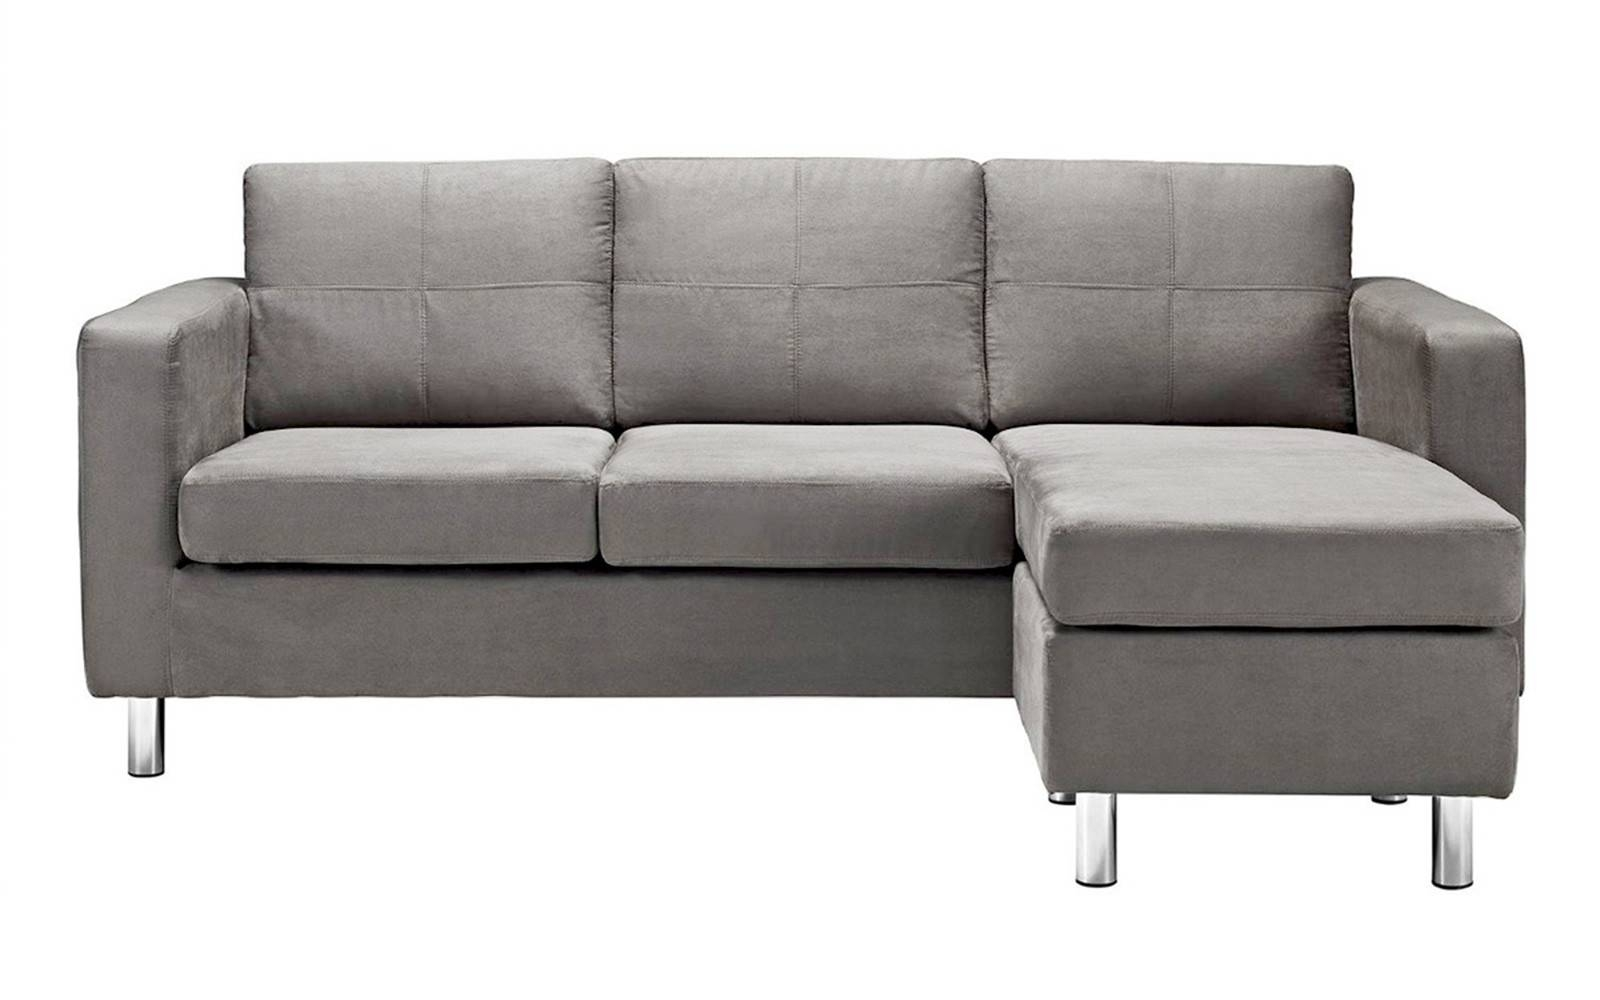 Modern Reversible Small Space Configurable Microfiber Sectional intended for Small Sectional Sofa (Image 15 of 30)